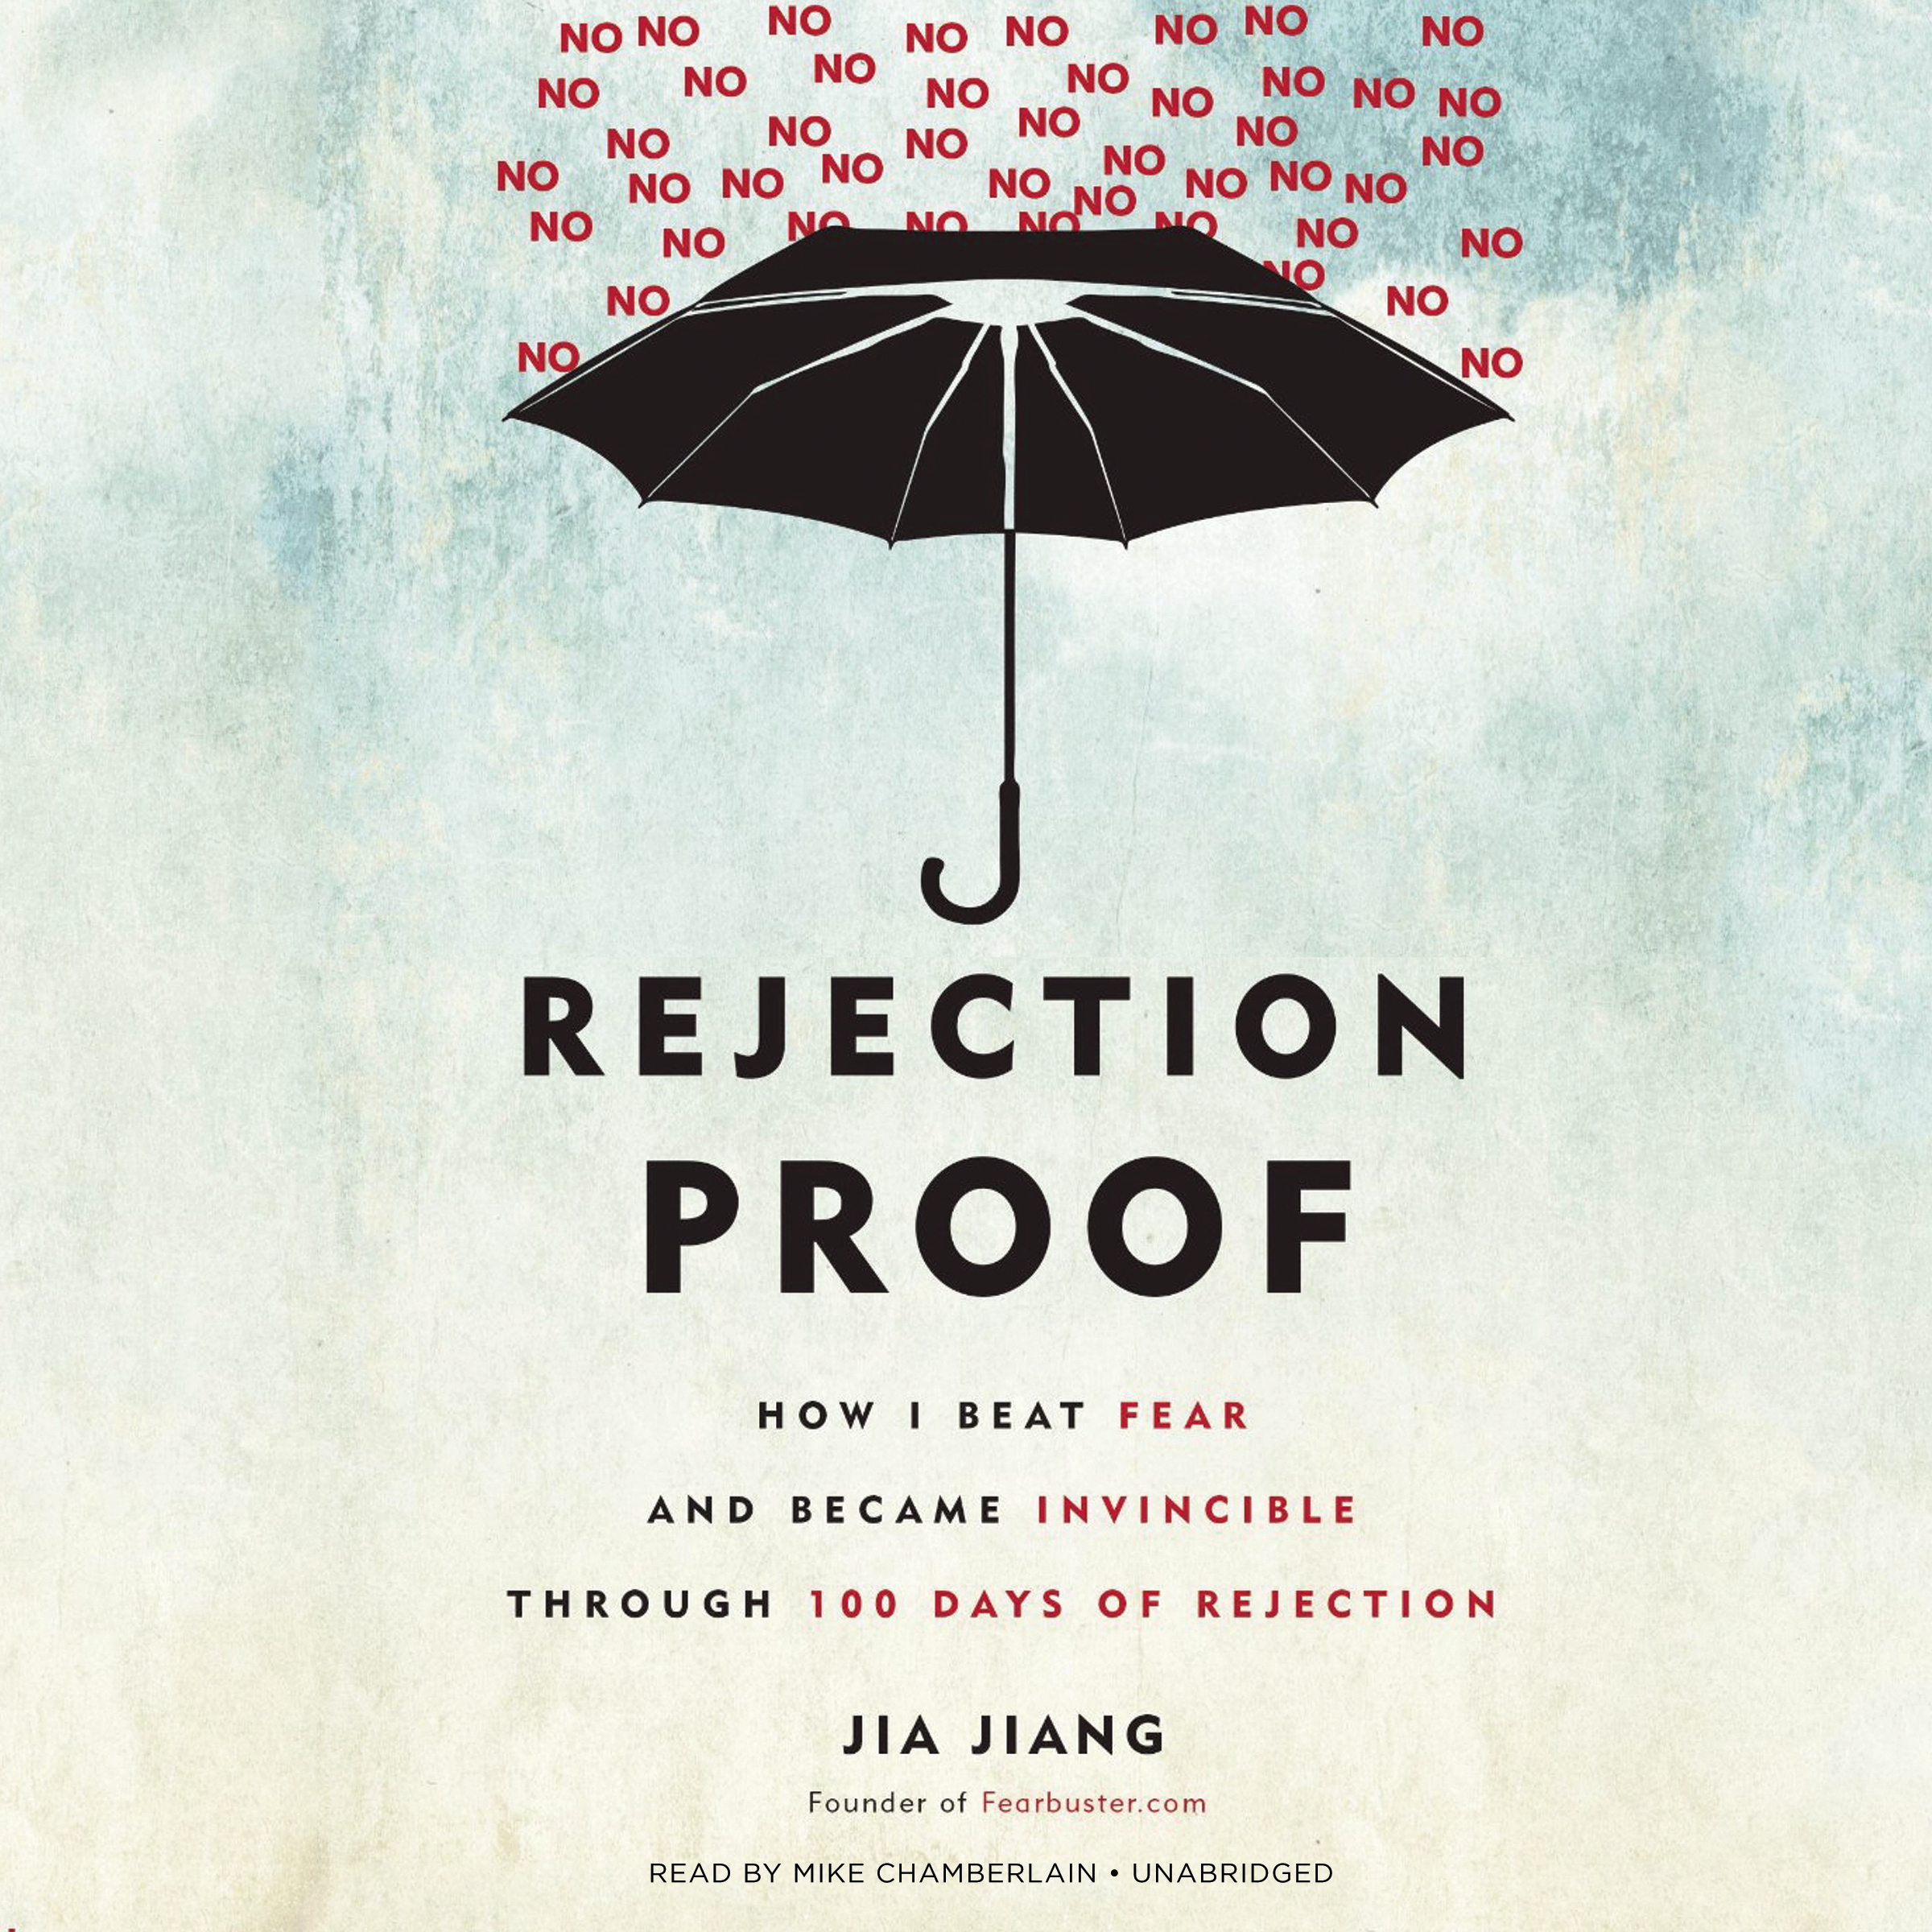 Printable Rejection Proof: How I Beat Fear and Became Invincible through 100 Days of Rejection  Audiobook Cover Art